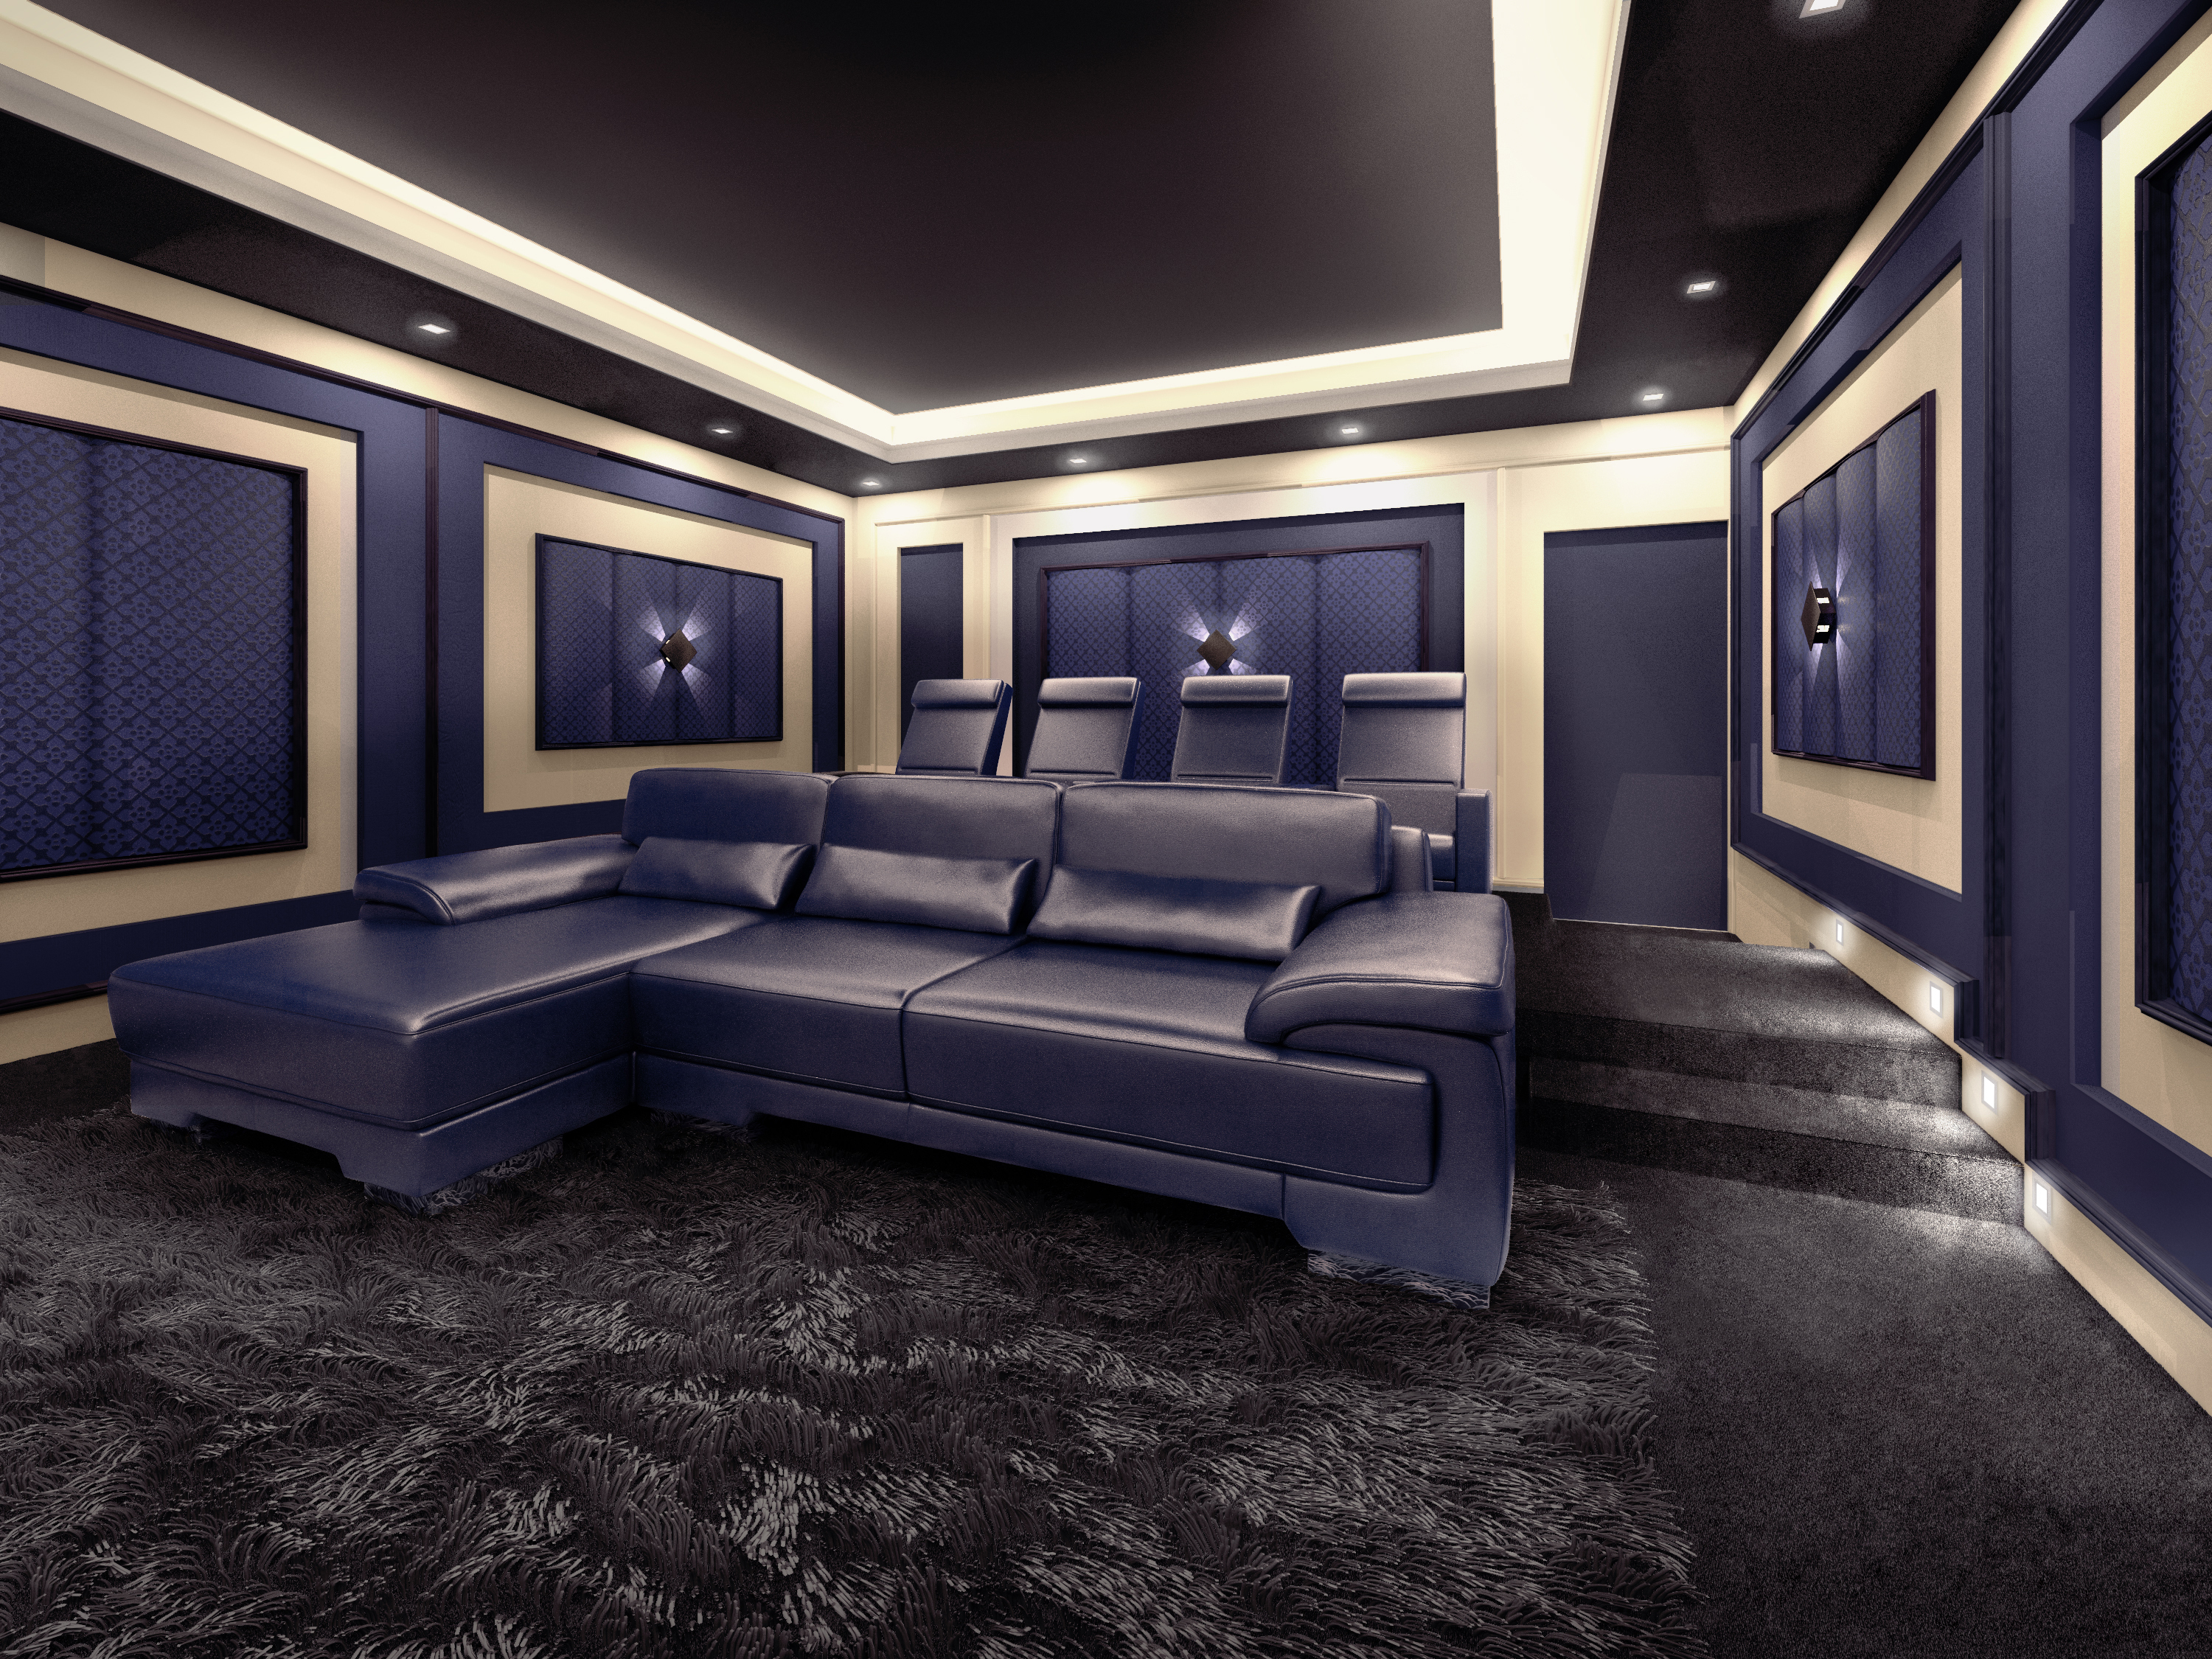 Home Theater Seating Led Lighting New Palliser Overdrive